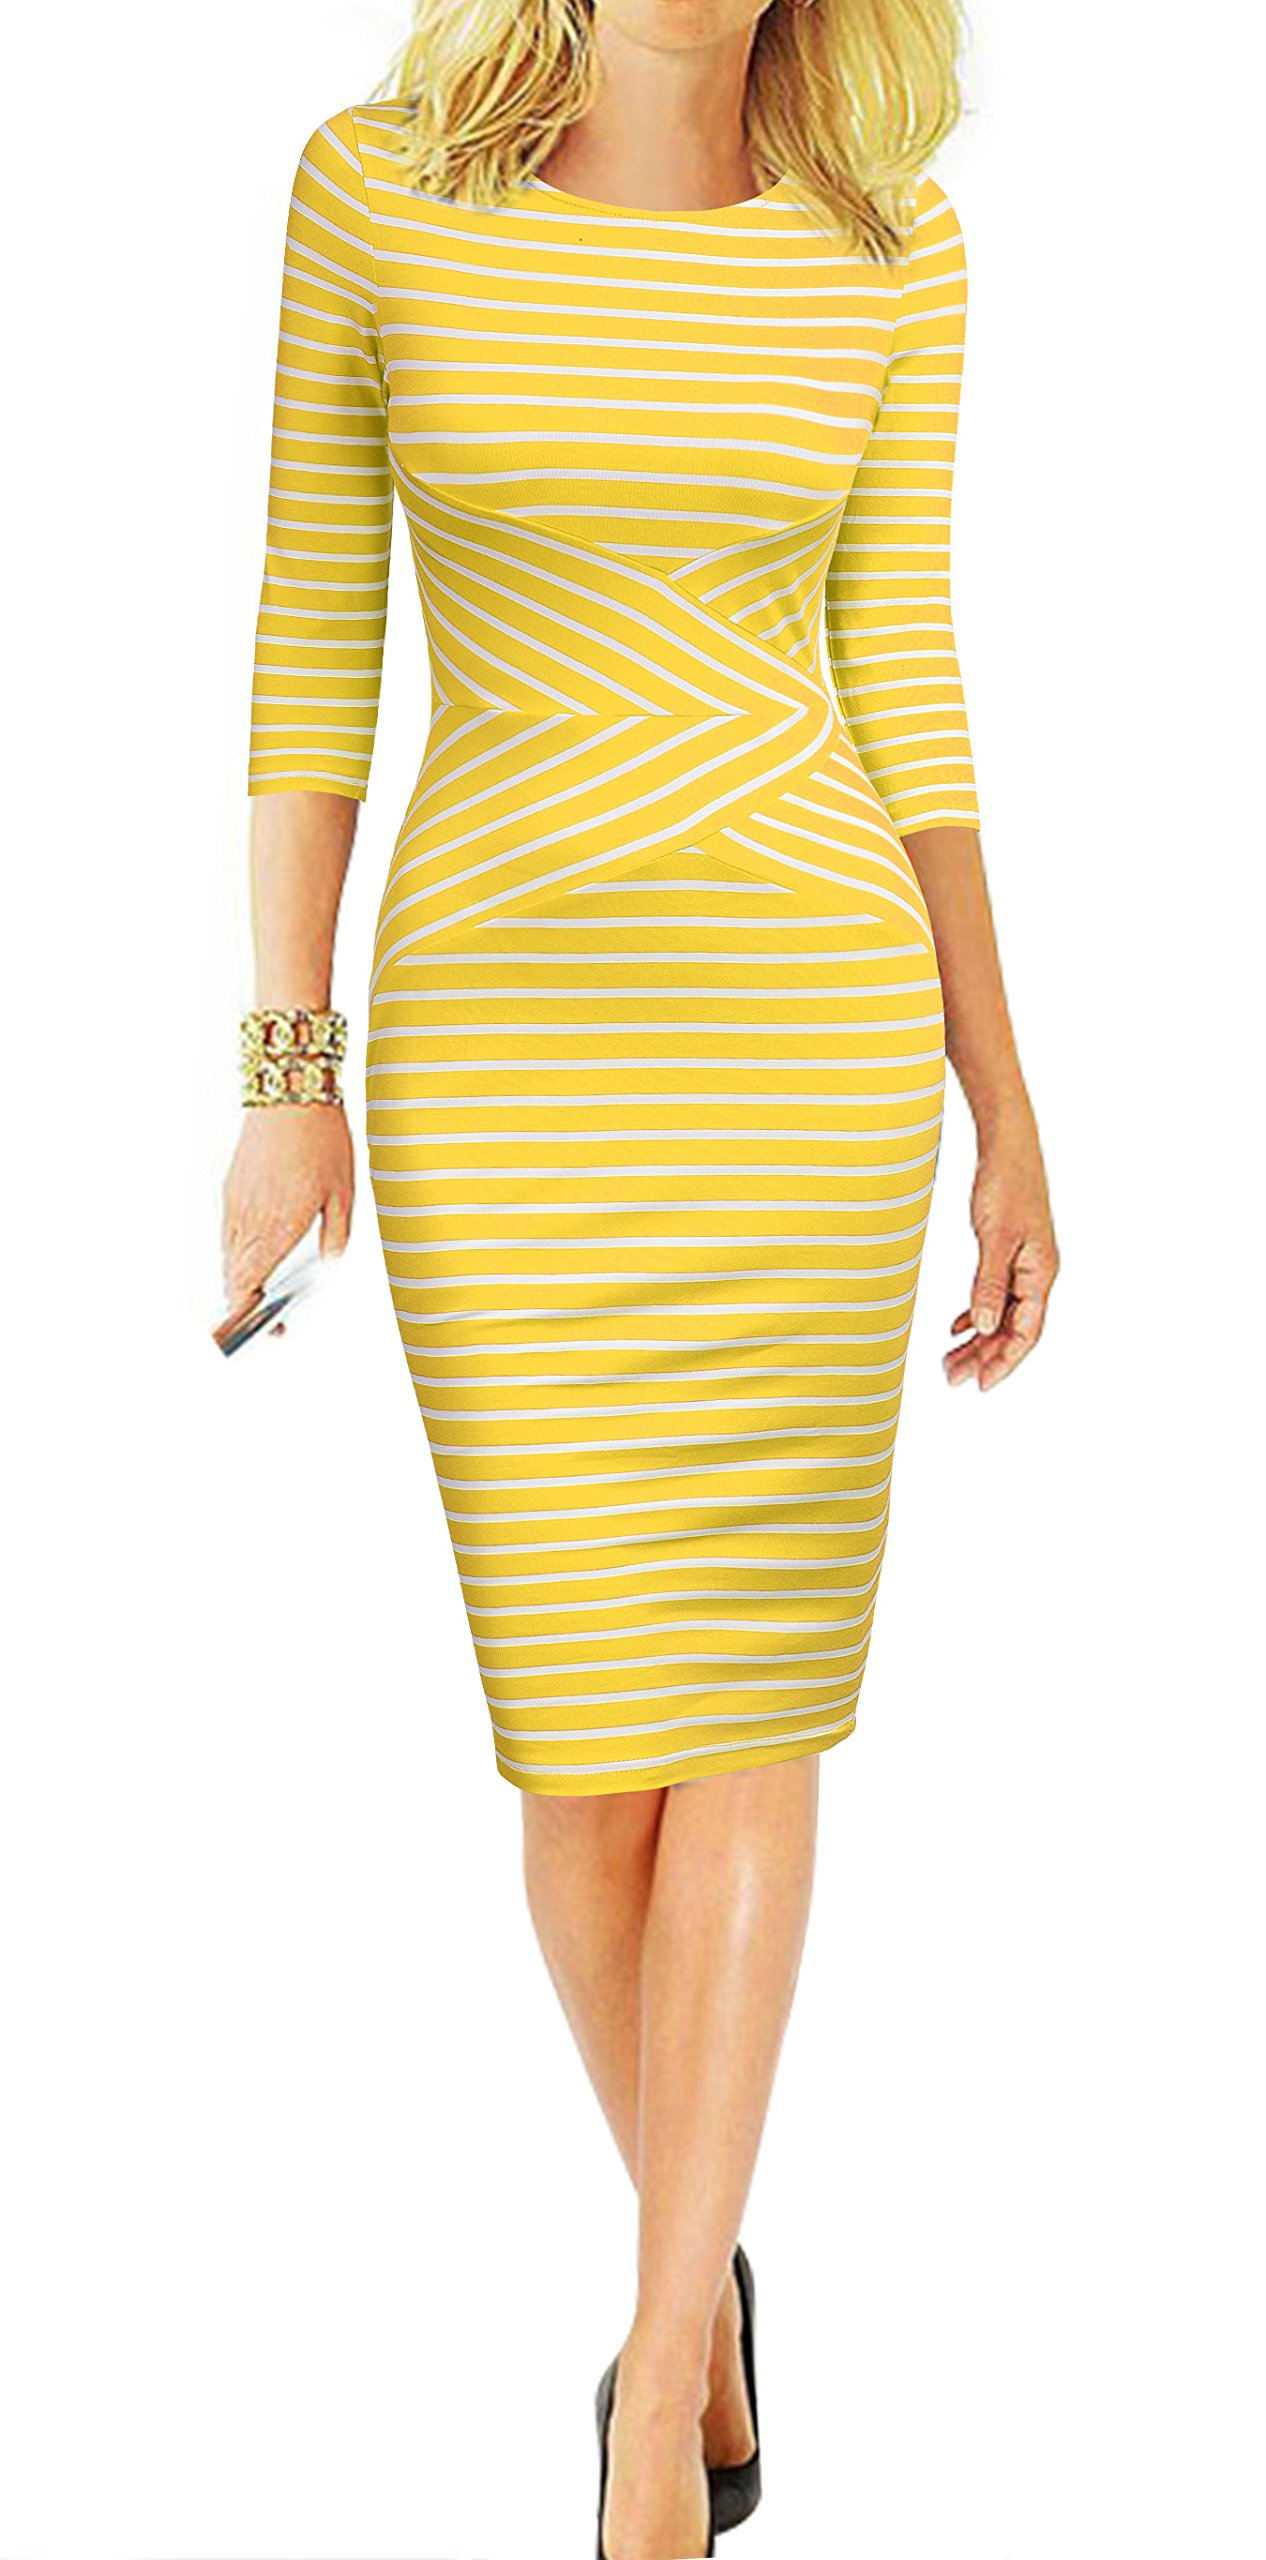 REPHYLLIS Women 3/4 Sleeve Striped Wear to Work Business Cocktail Pencil Dress XL Yellow